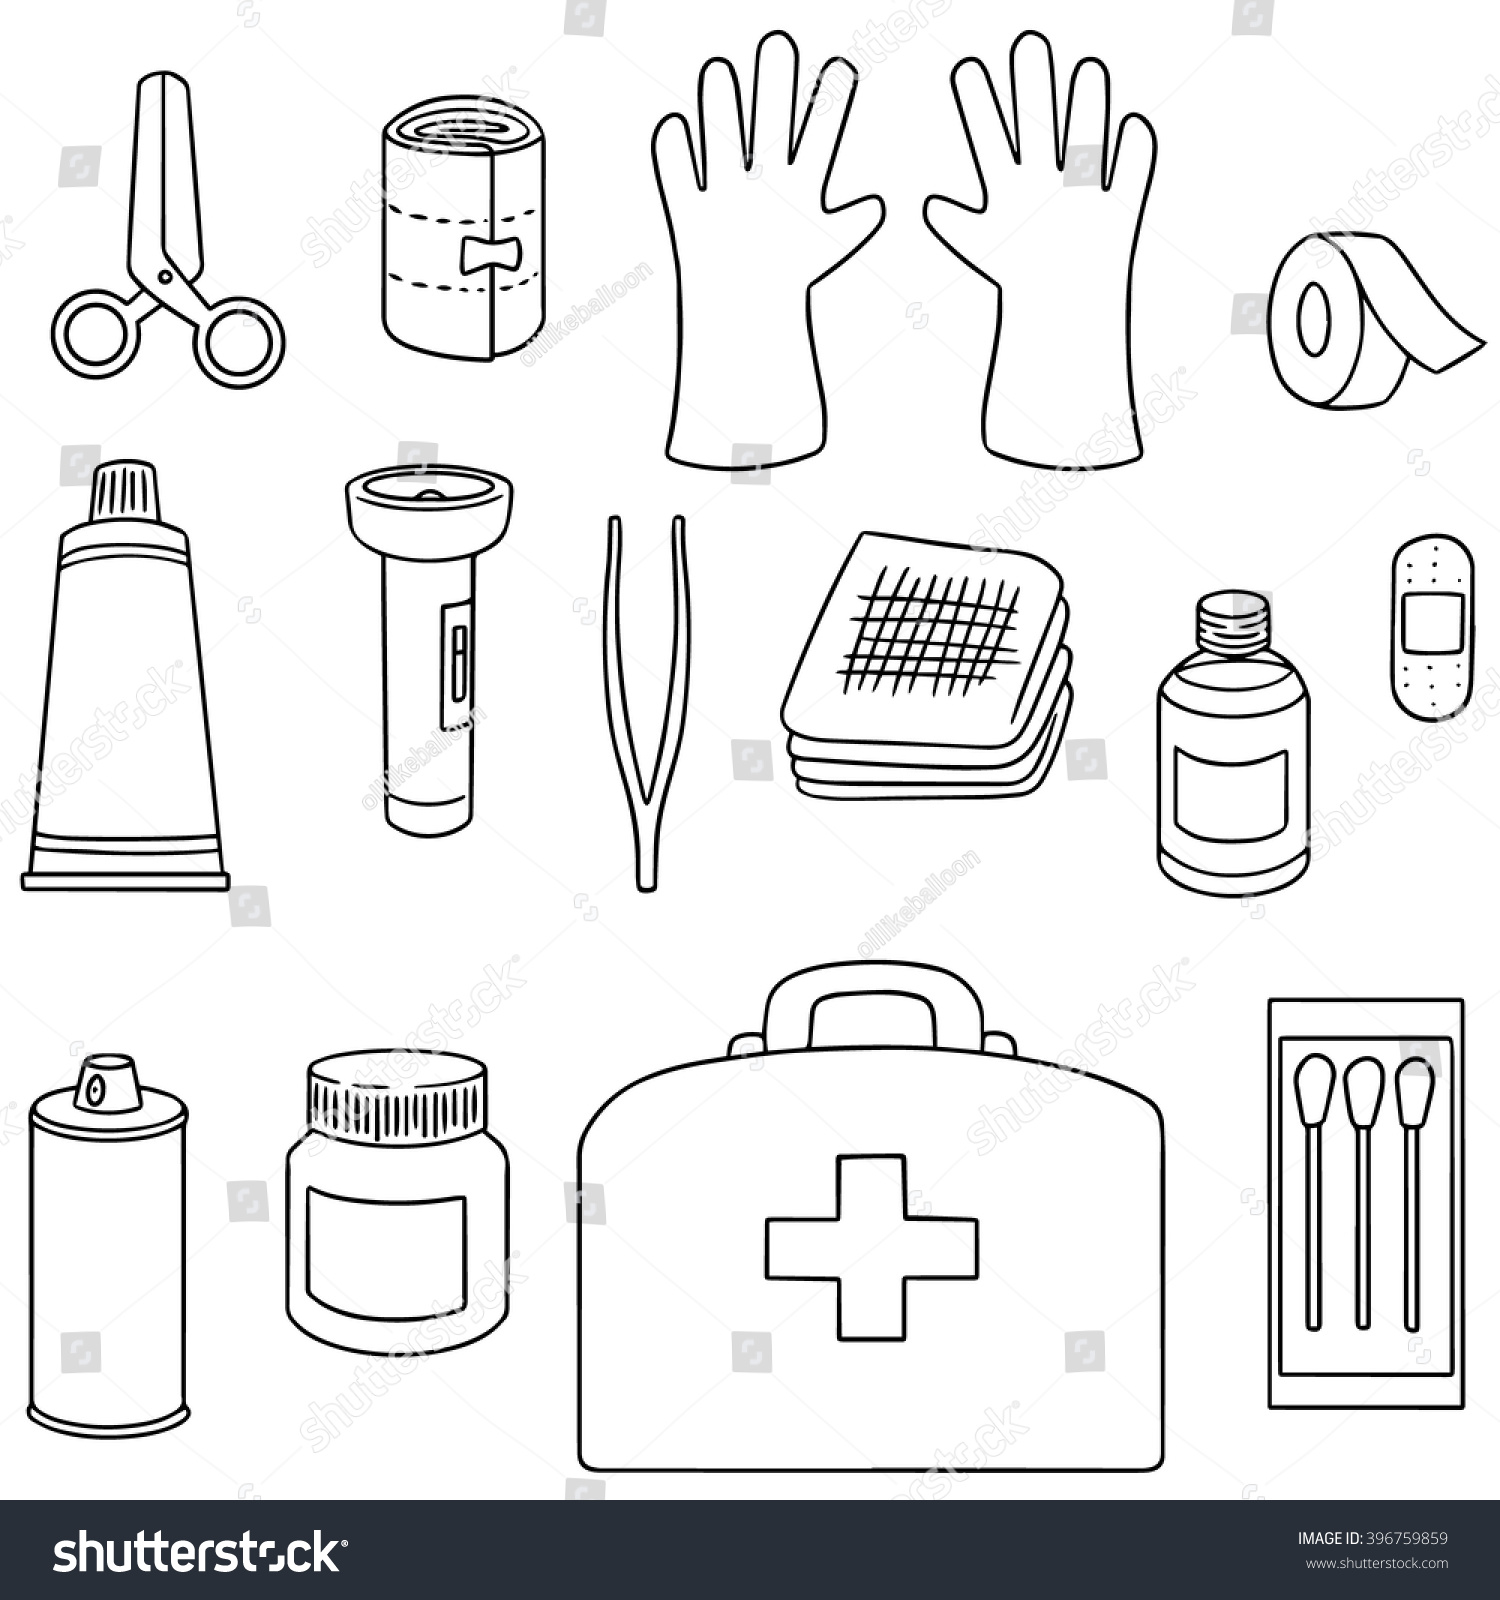 Free Coloring Pages About First Aid: Vector Set First Aid Kit Stock Vector 396759859